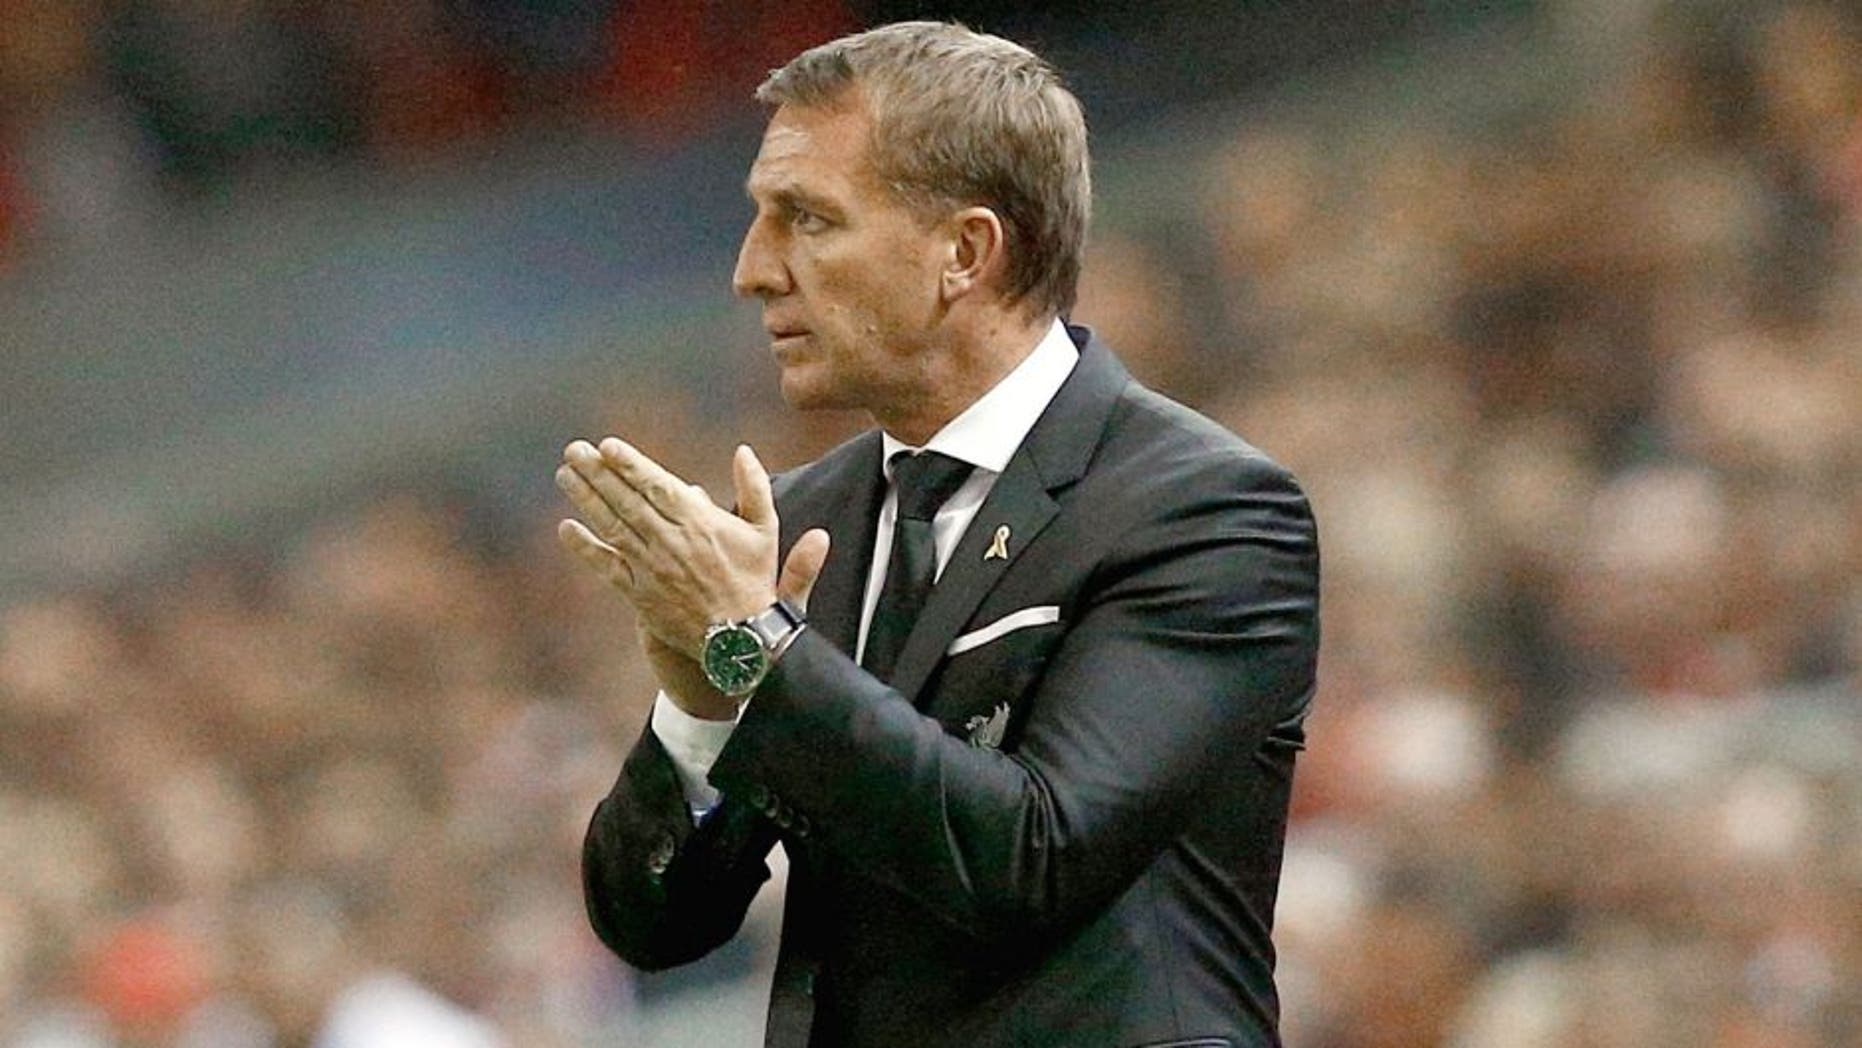 LIVERPOOL, ENGLAND - OCTOBER 01: Brendan Rodgers manager of Liverpool looks on from the touchline during the UEFA Europa League group B match between Liverpool FC and FC Sion at Anfield on October 1, 2015 in Liverpool, United Kingdom. (Photo by Dean Mouhtaropoulos/Getty Images)